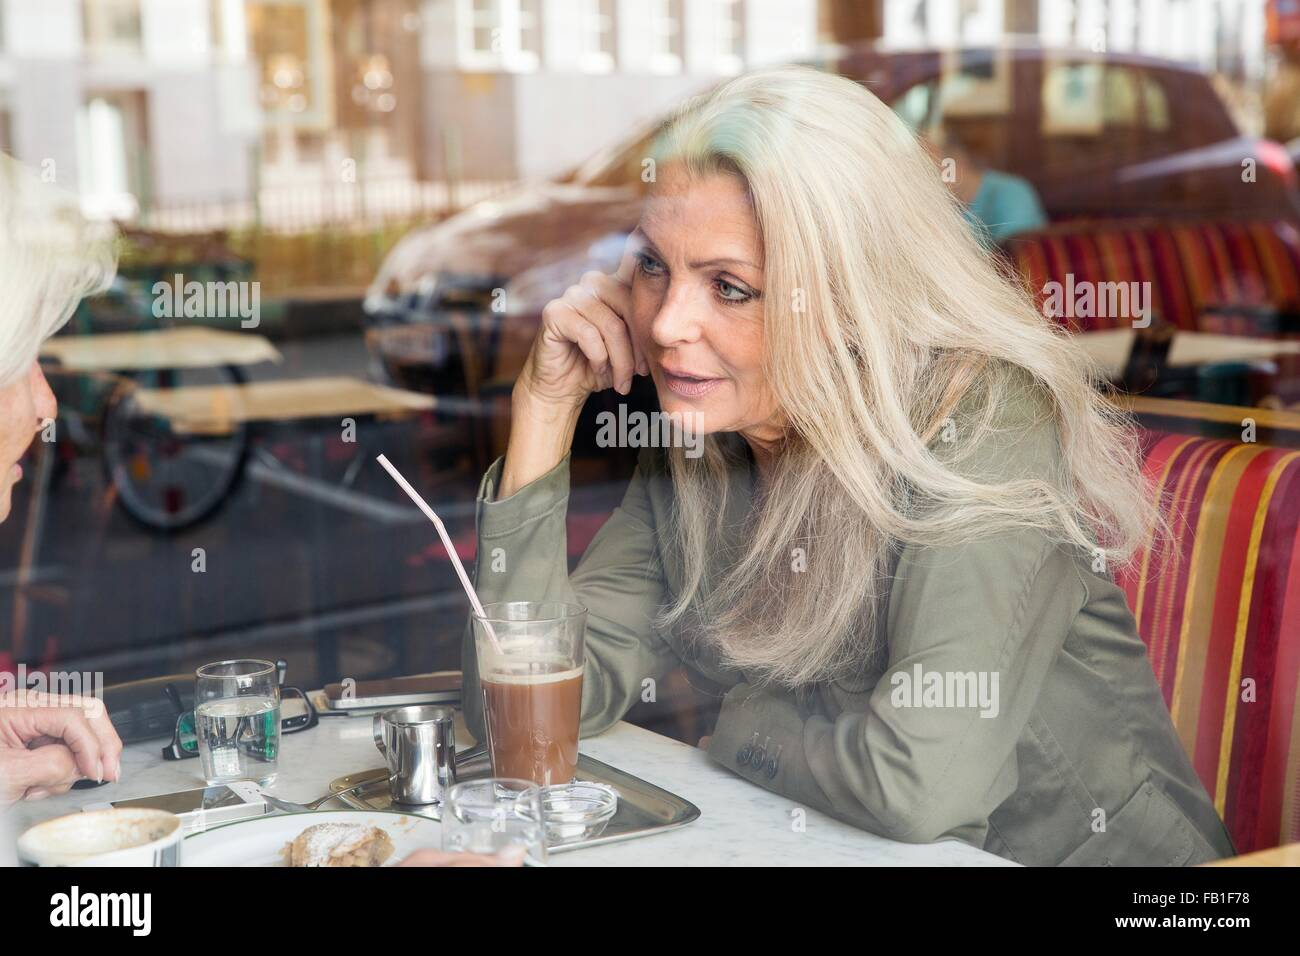 Mother and daughter sitting together in cafe, seen through cafe window - Stock Image